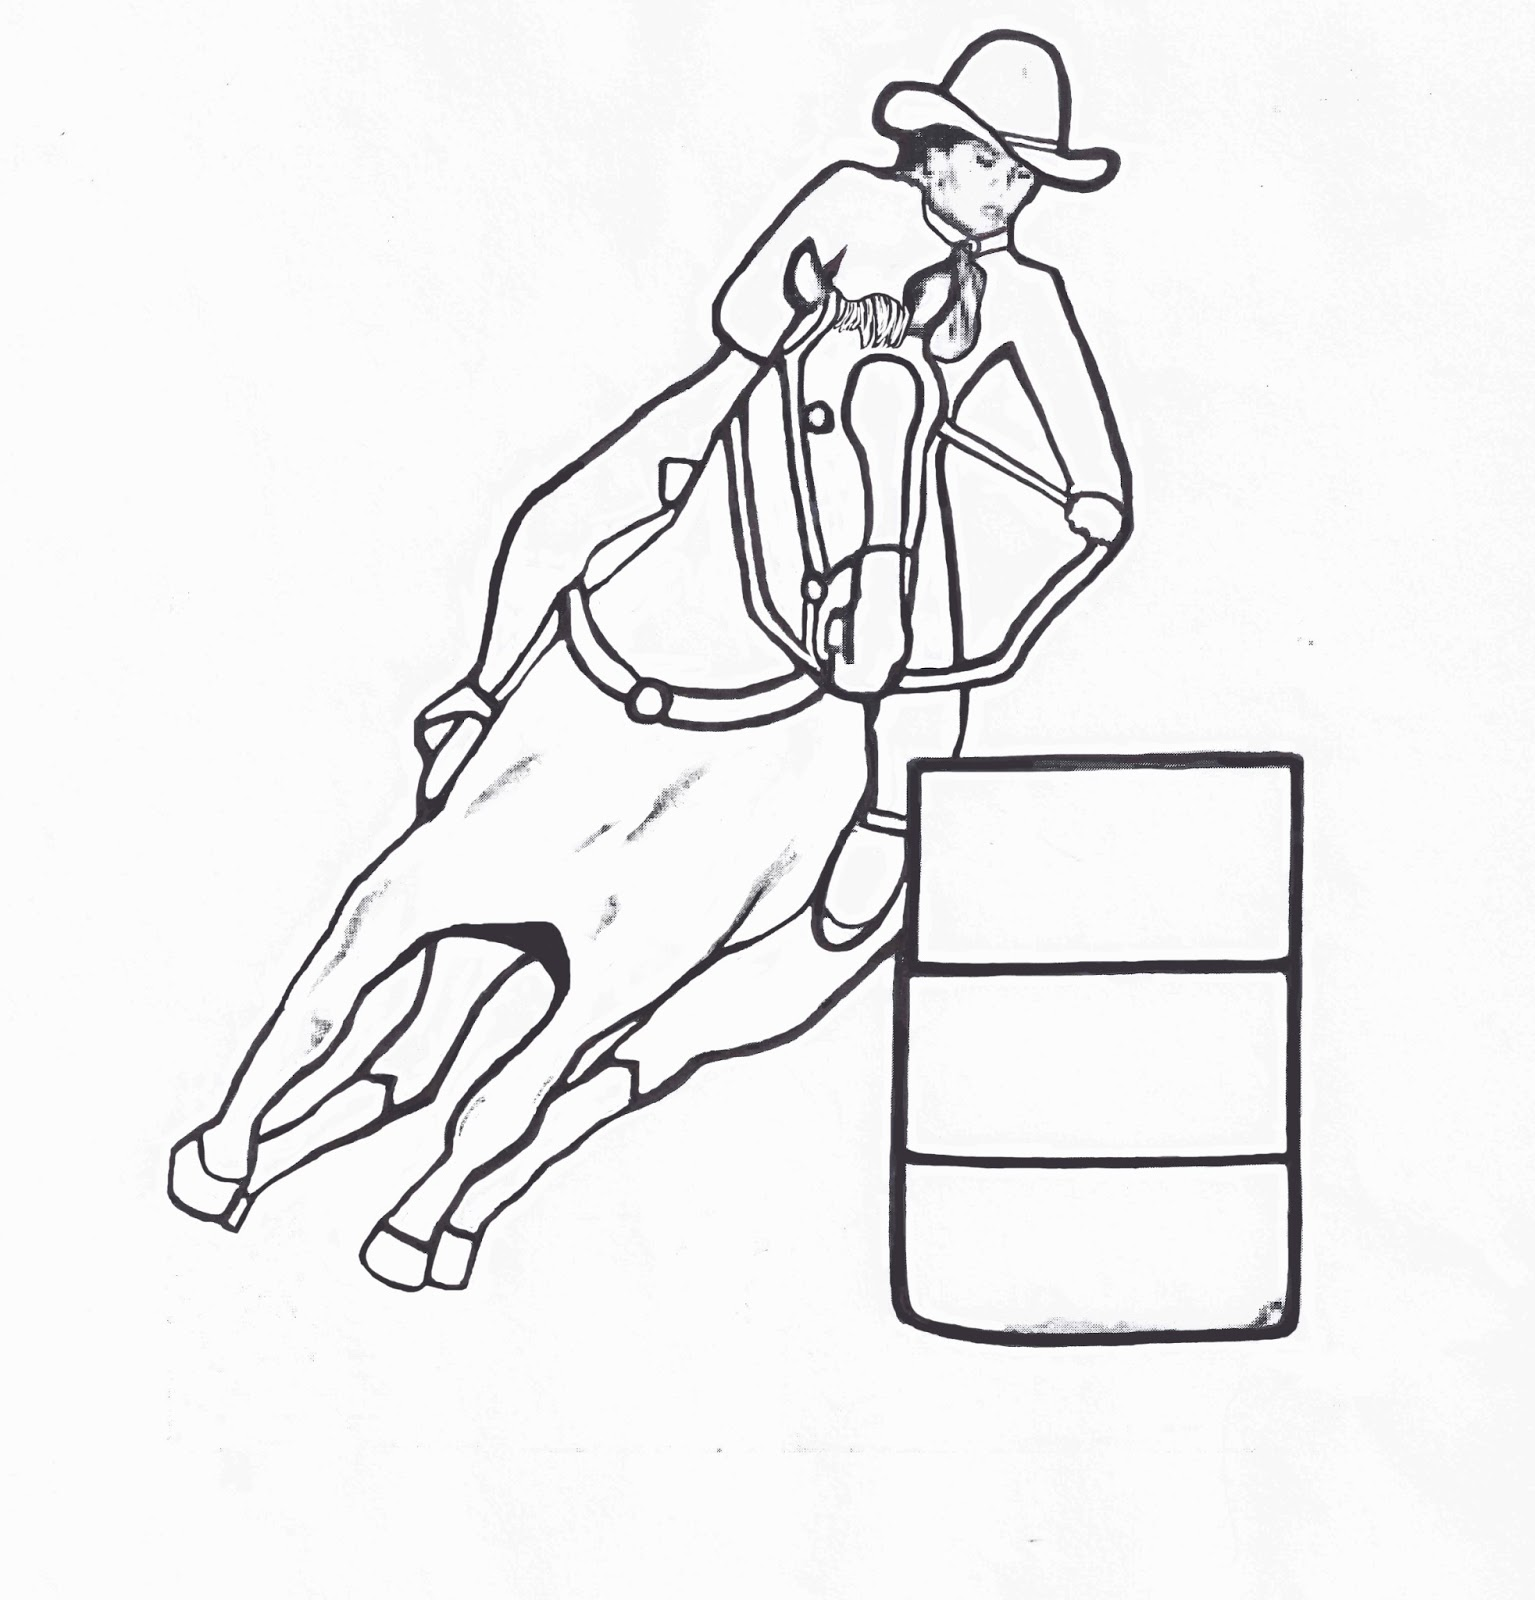 coloring pages of barrels - photo#10